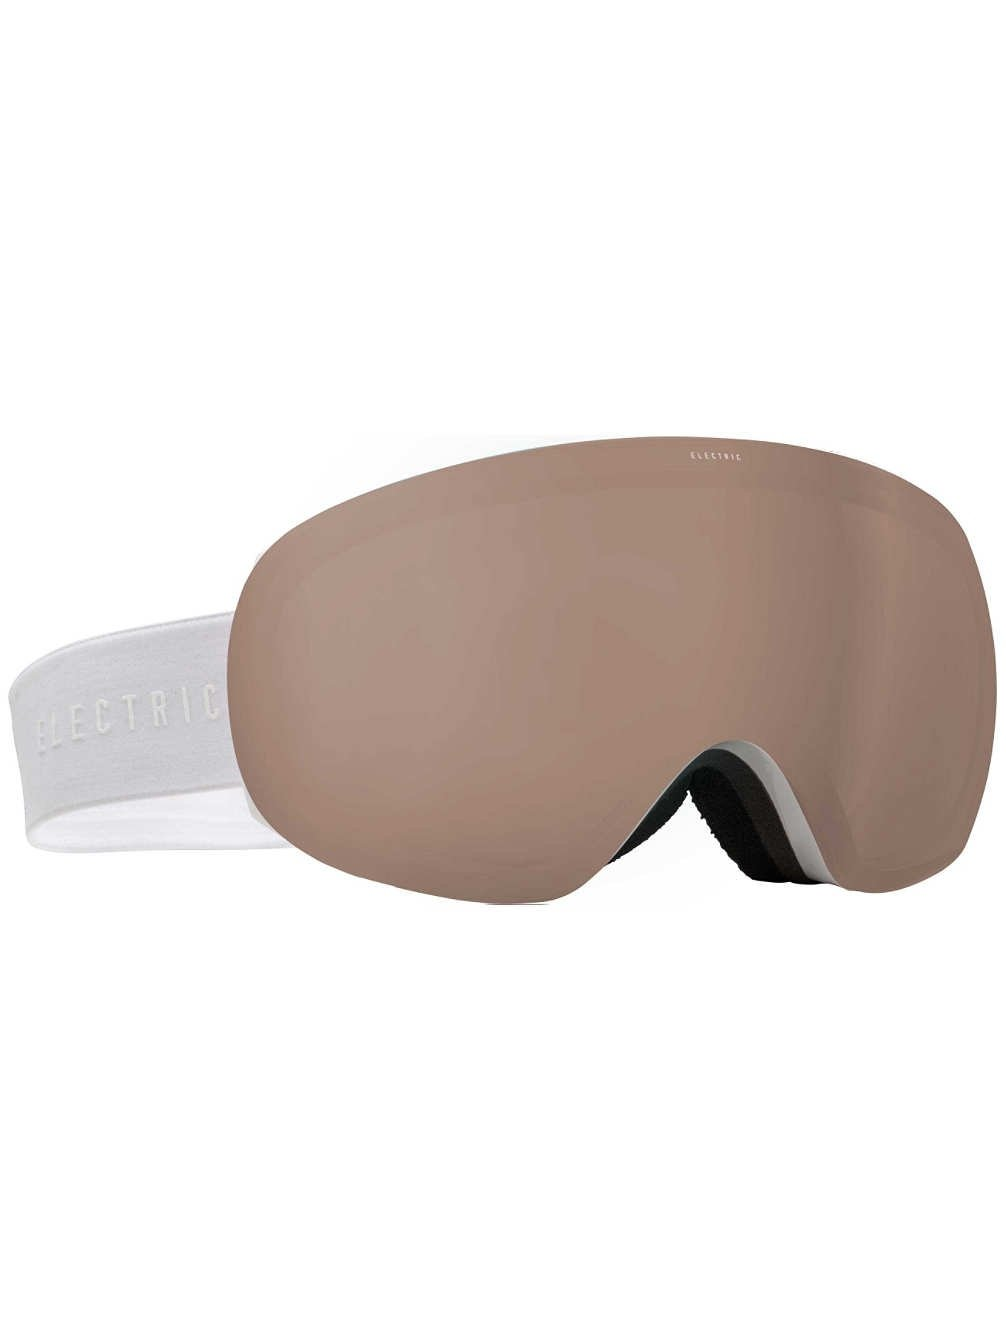 Electric Visual Eg3.5 Gloss White Unisex Spherical Goggles - Bronze / One Size Fits All